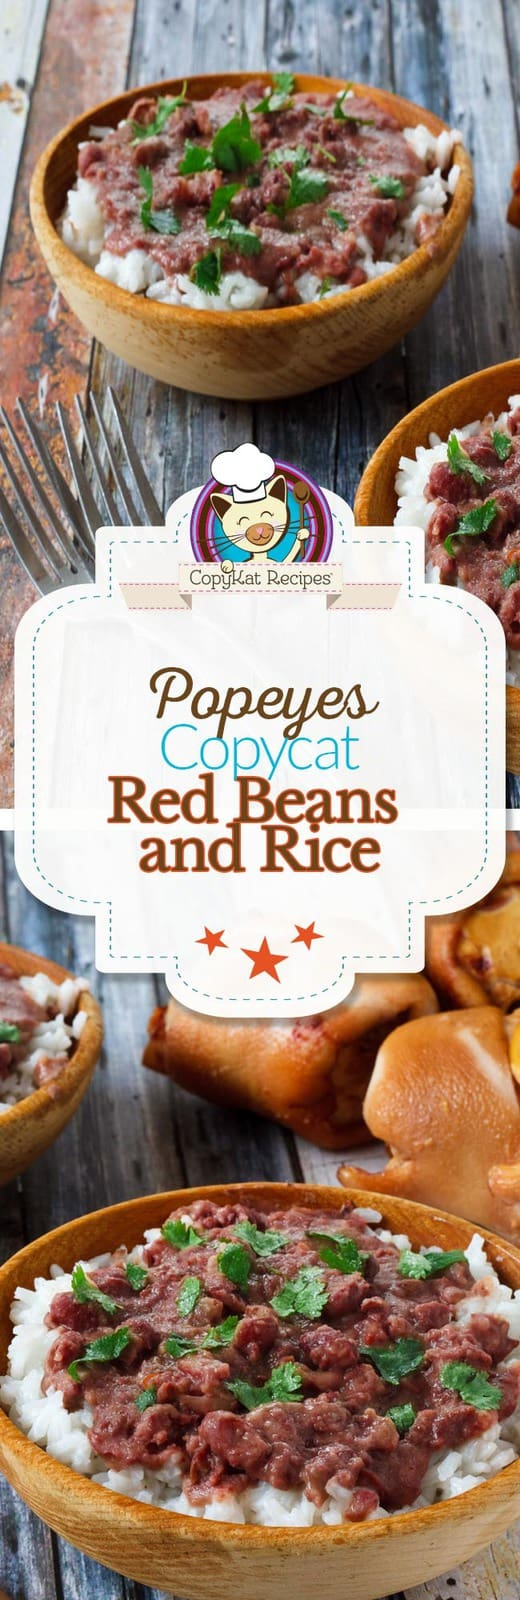 Try your hand at making Popeyes Red Beans and Rice with this easy copycat recipe.